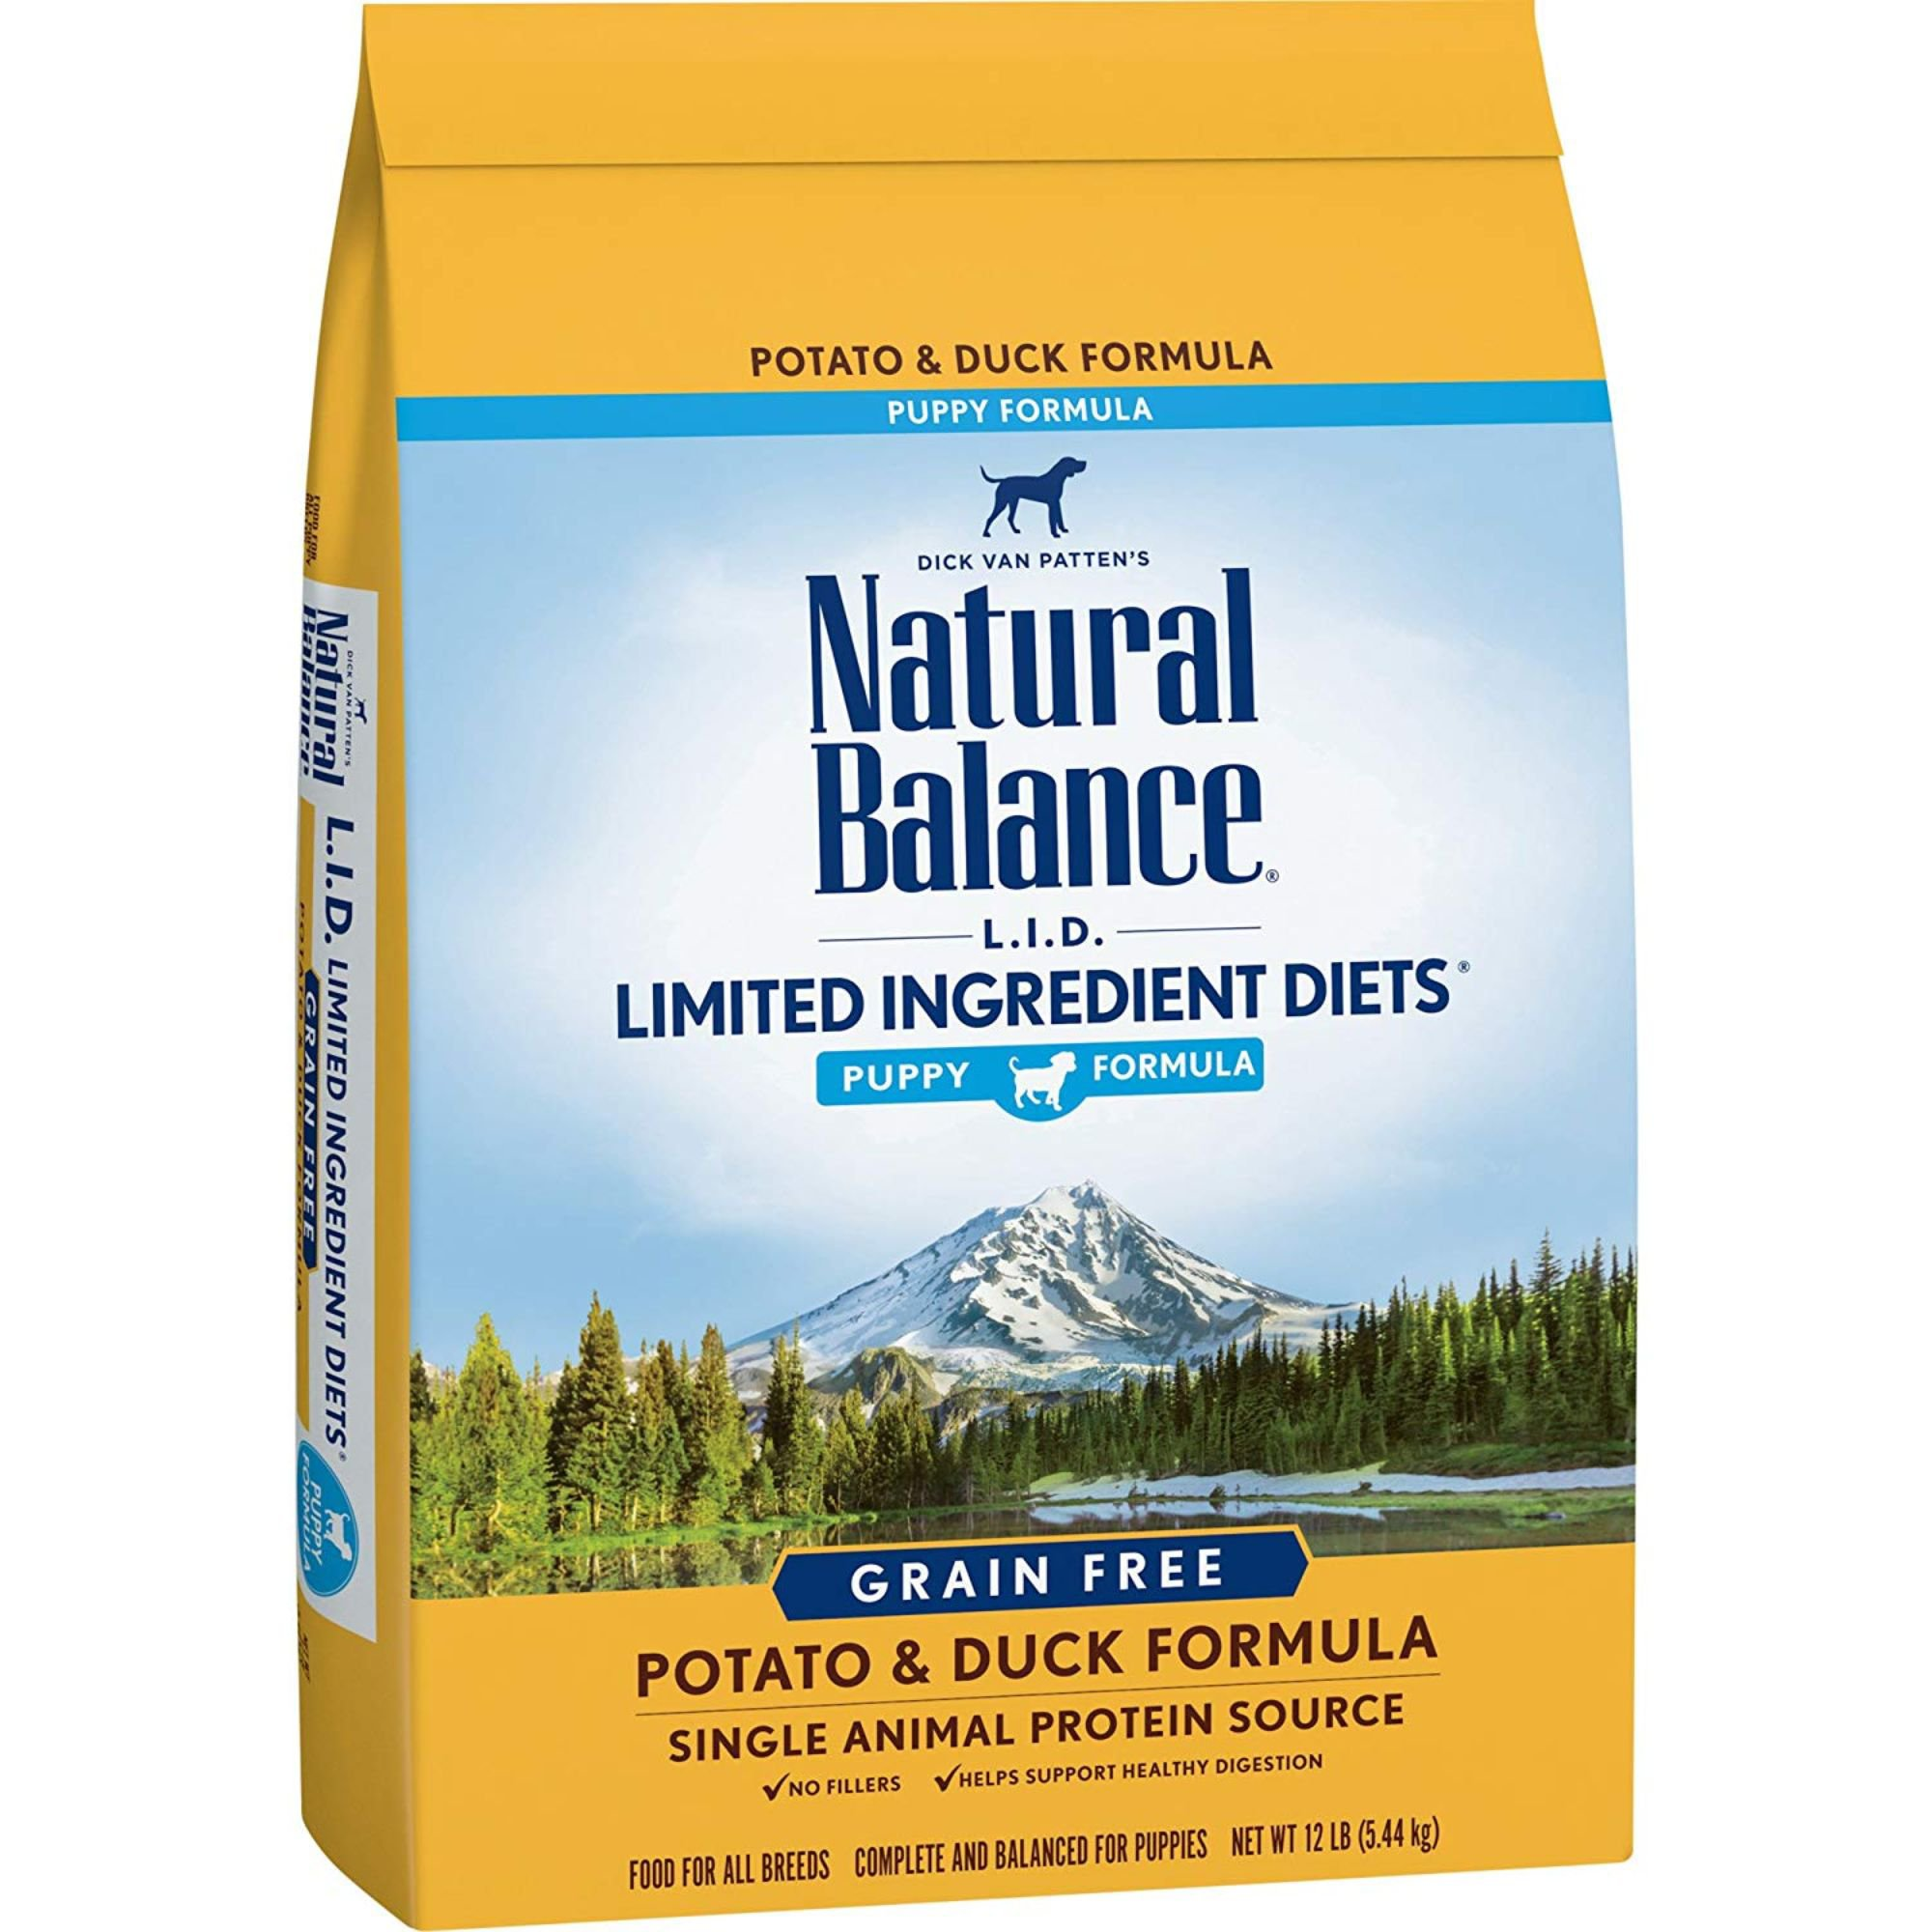 Natural Balance Limited Ingredient Puppy Food